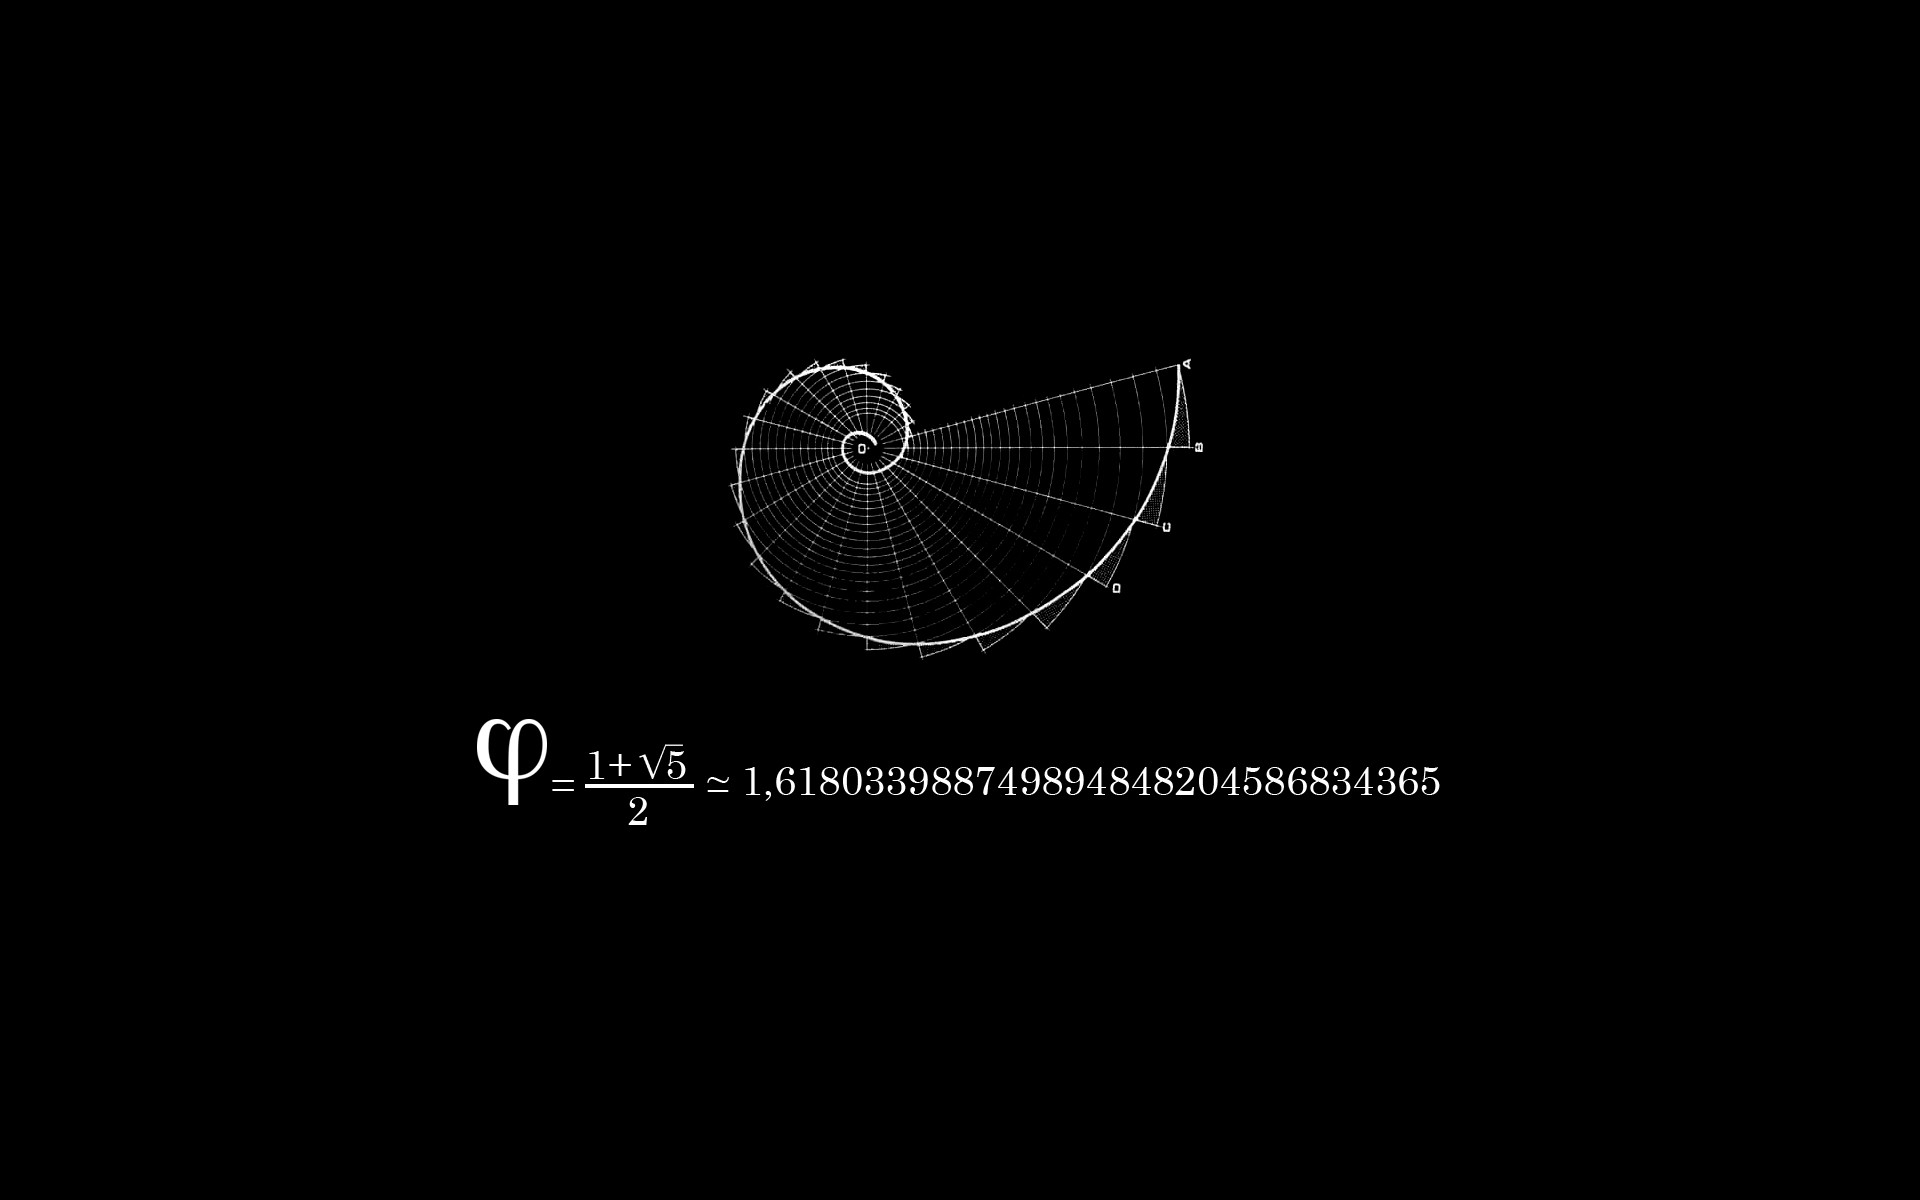 Physics Equations Wallpaper Wallpapersafari Http Backgroundpicturesfeedionet Electricalwirediagrams Black Mathematics Background 1920x1200